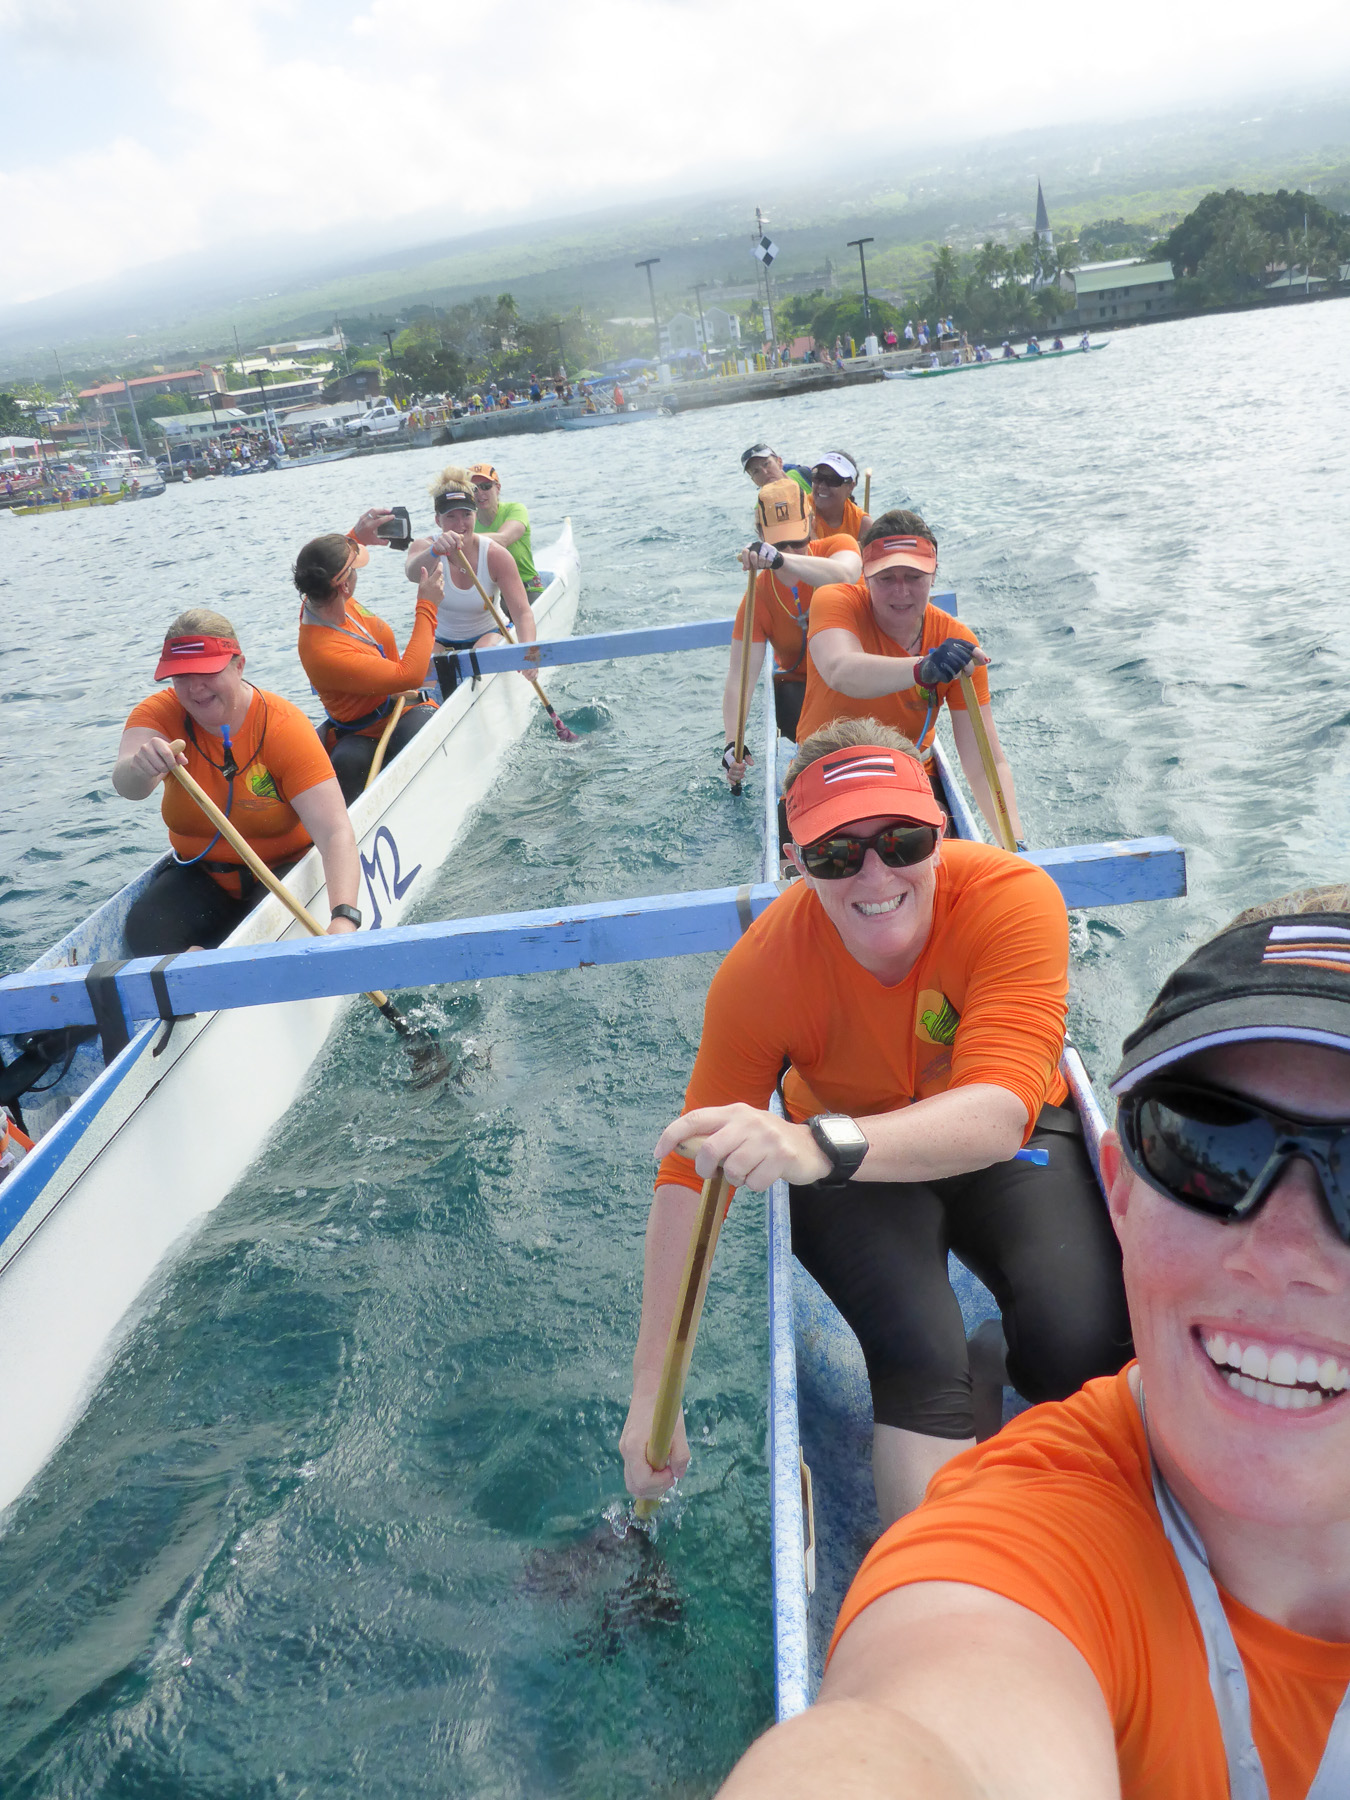 PD chicks in the Queen Lili'ukalani OC12 race